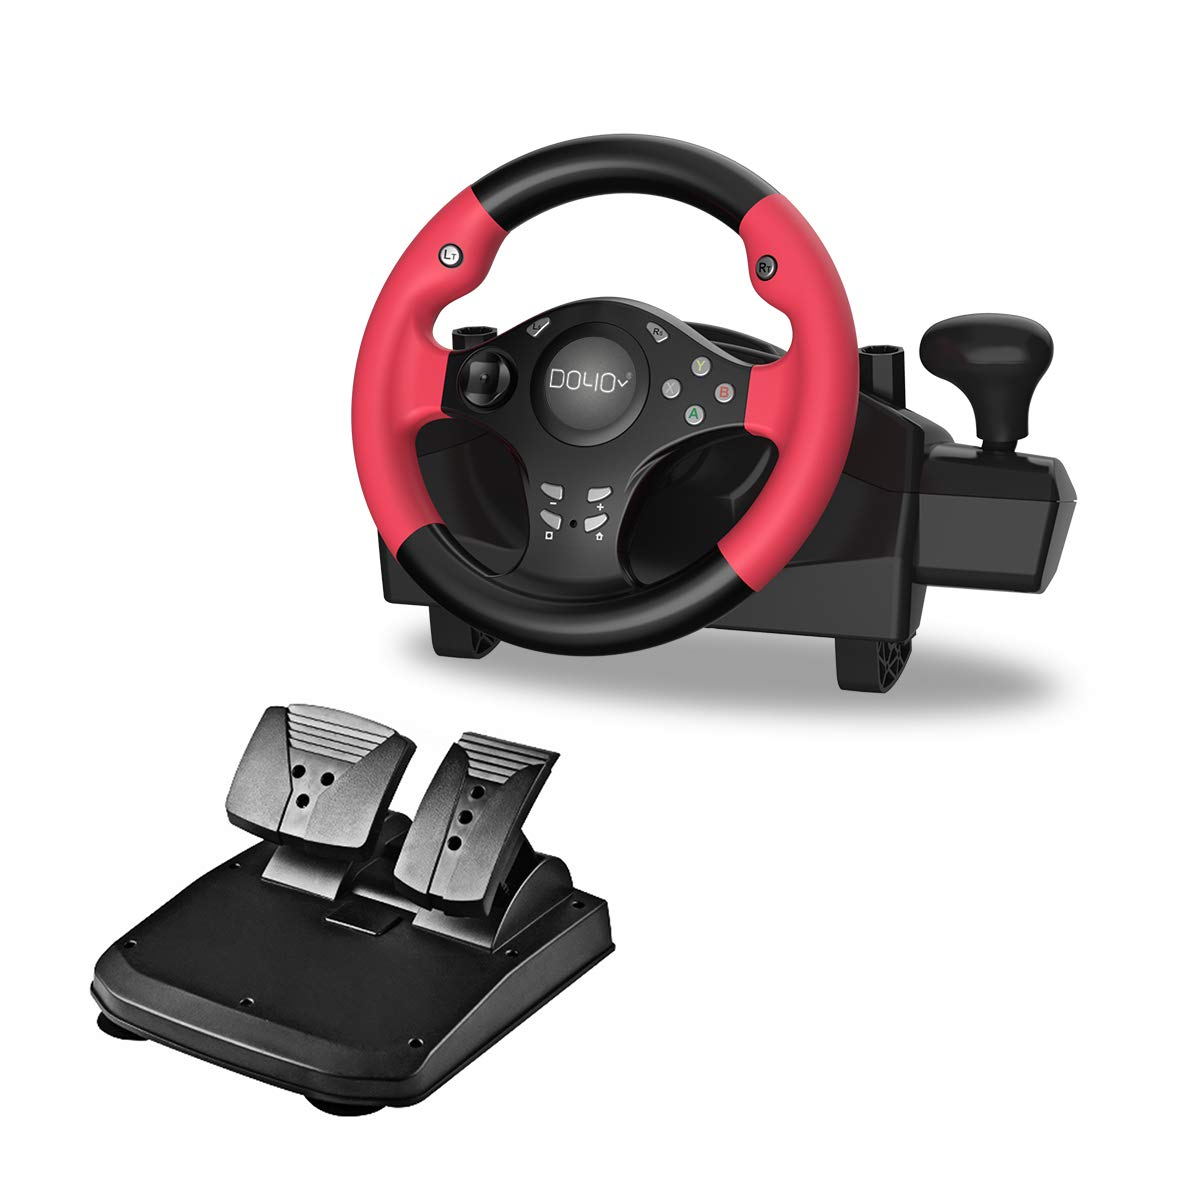 DOYO 270 Degree Motor Vibration Driving Gaming Racing Wheel with Responsive Gear and Pedals for PC/PS3/NIntendo Switch/TV BOX